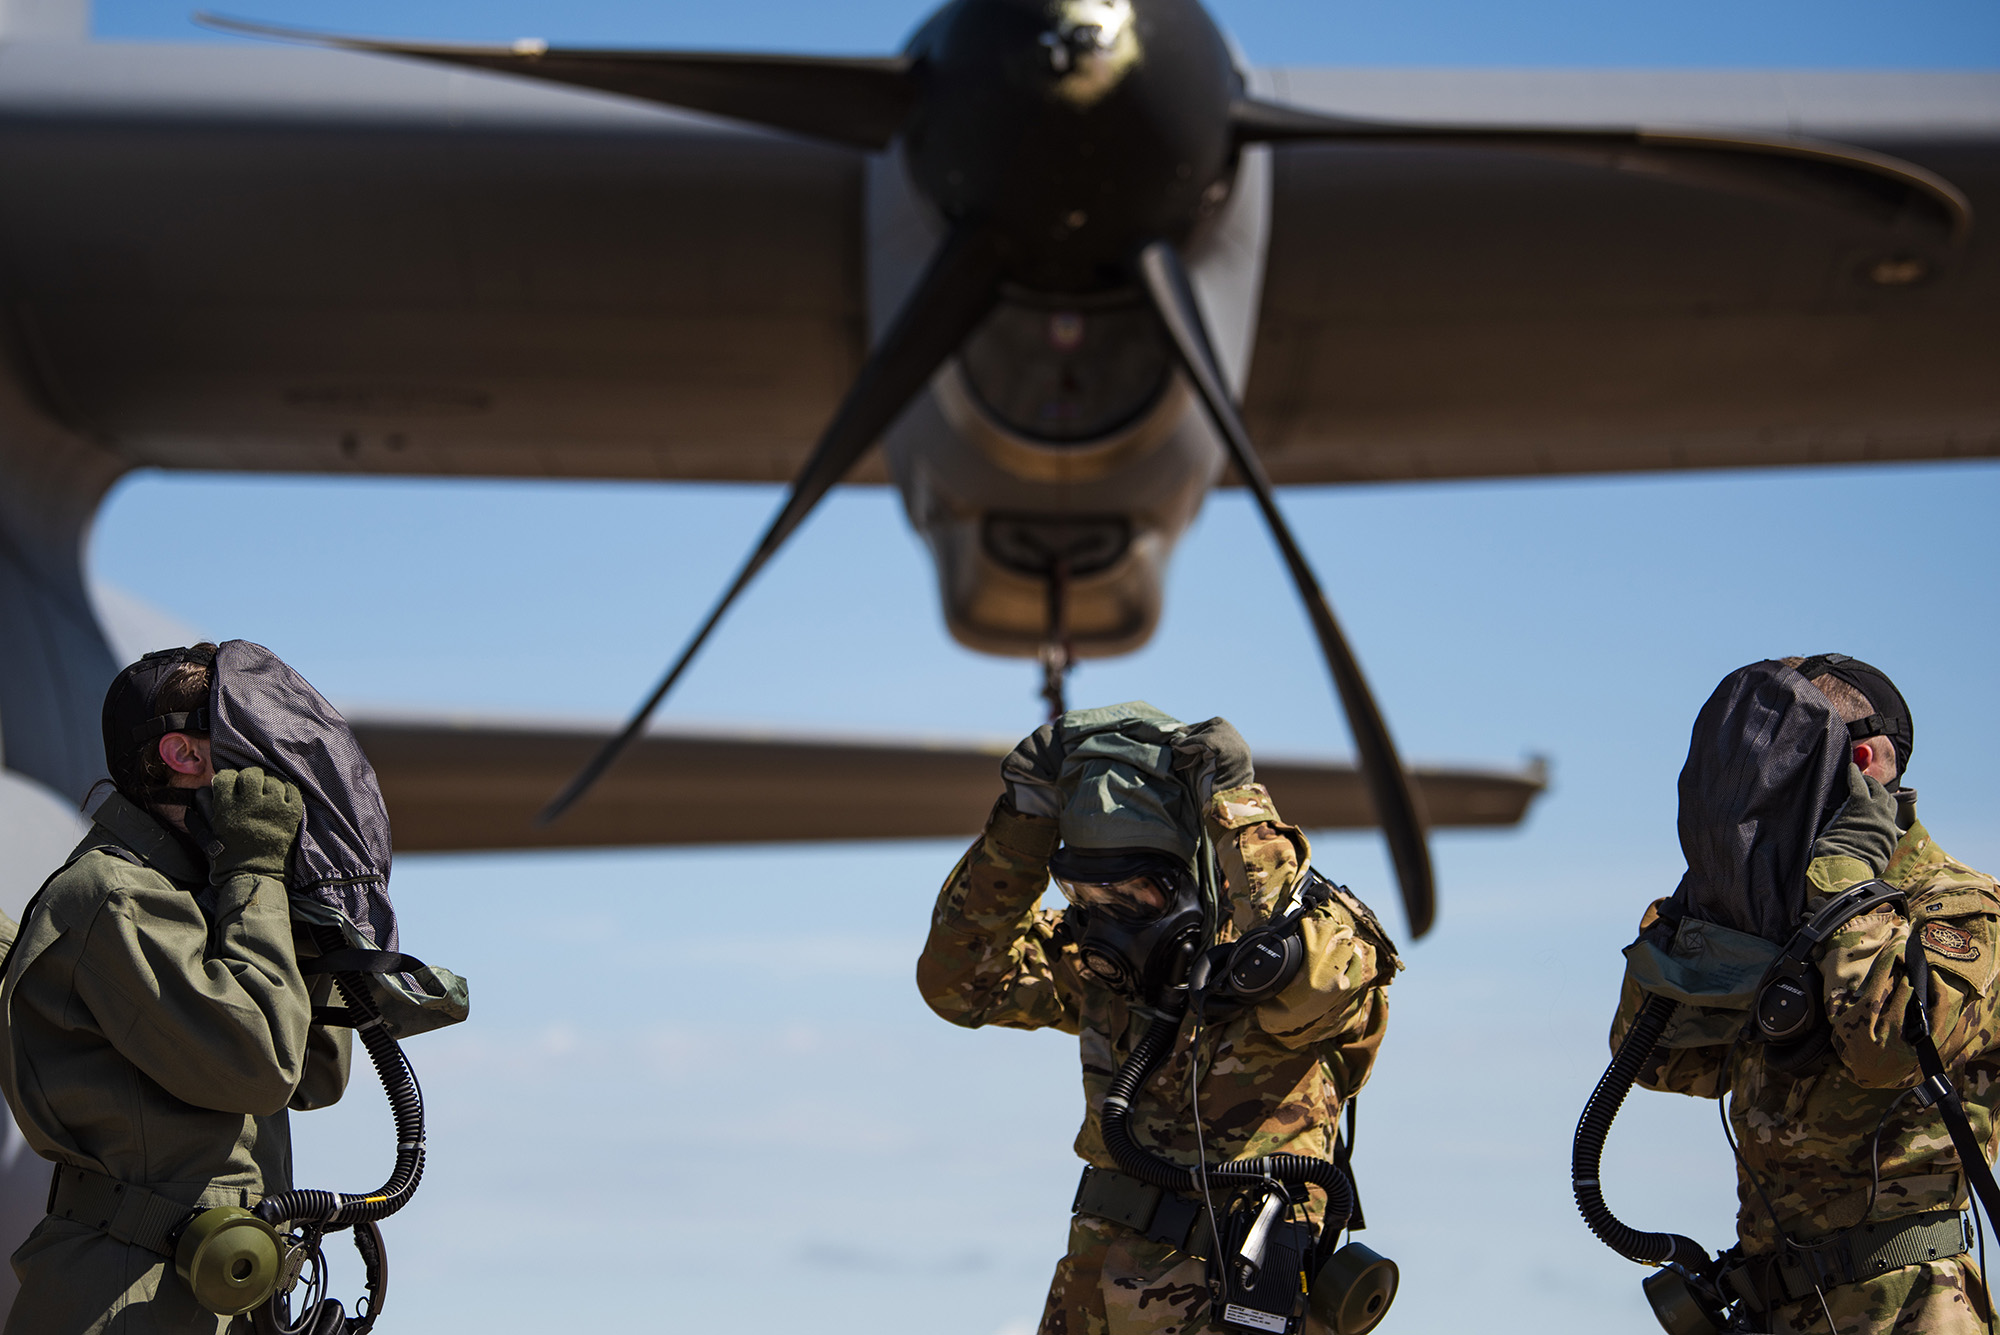 First Lt. Coltan Nading, 40th Airlift Squadron pilot, left, Capt. Miranda Mila, 40th AS pilot, center, and Senior Airman Noah Isom, 39th AS loadmaster, remove their gas masks next to a C-130J Super Hercules at Dyess Air Force Base, Texas, June 2, 2021. The aircrew demonstrated the operability of the new Uniform Integrated Protective Ensemble Air 2 Piece Under Garment chemical protective suit during simulated preflight and ground egress procedures. (Airman 1st Class Colin Hollowell/Air Force)